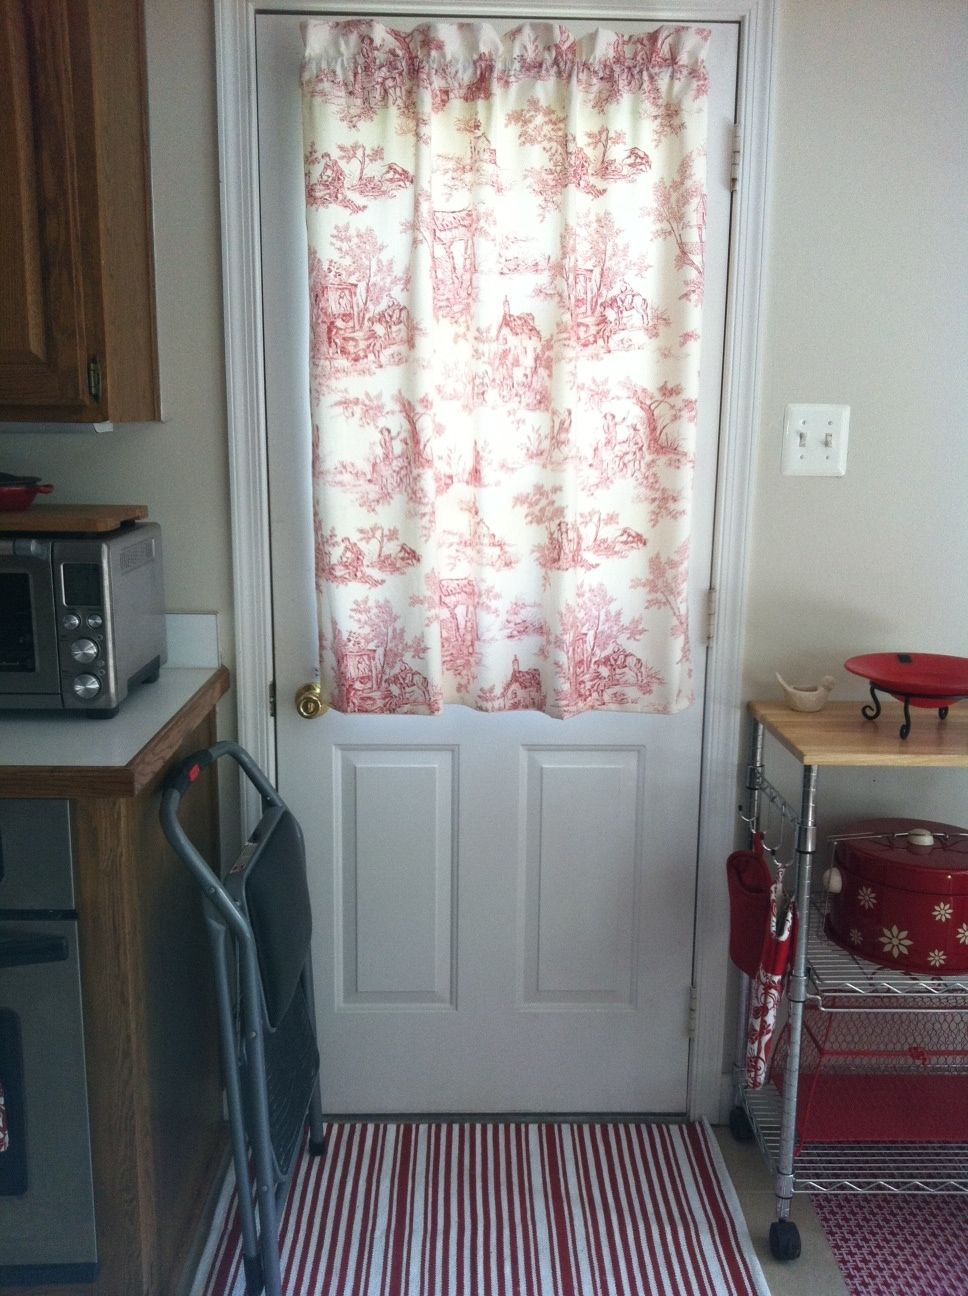 Le Meilleur Kitchen Door Curtain My Craft Projects In 2019 Door Ce Mois Ci